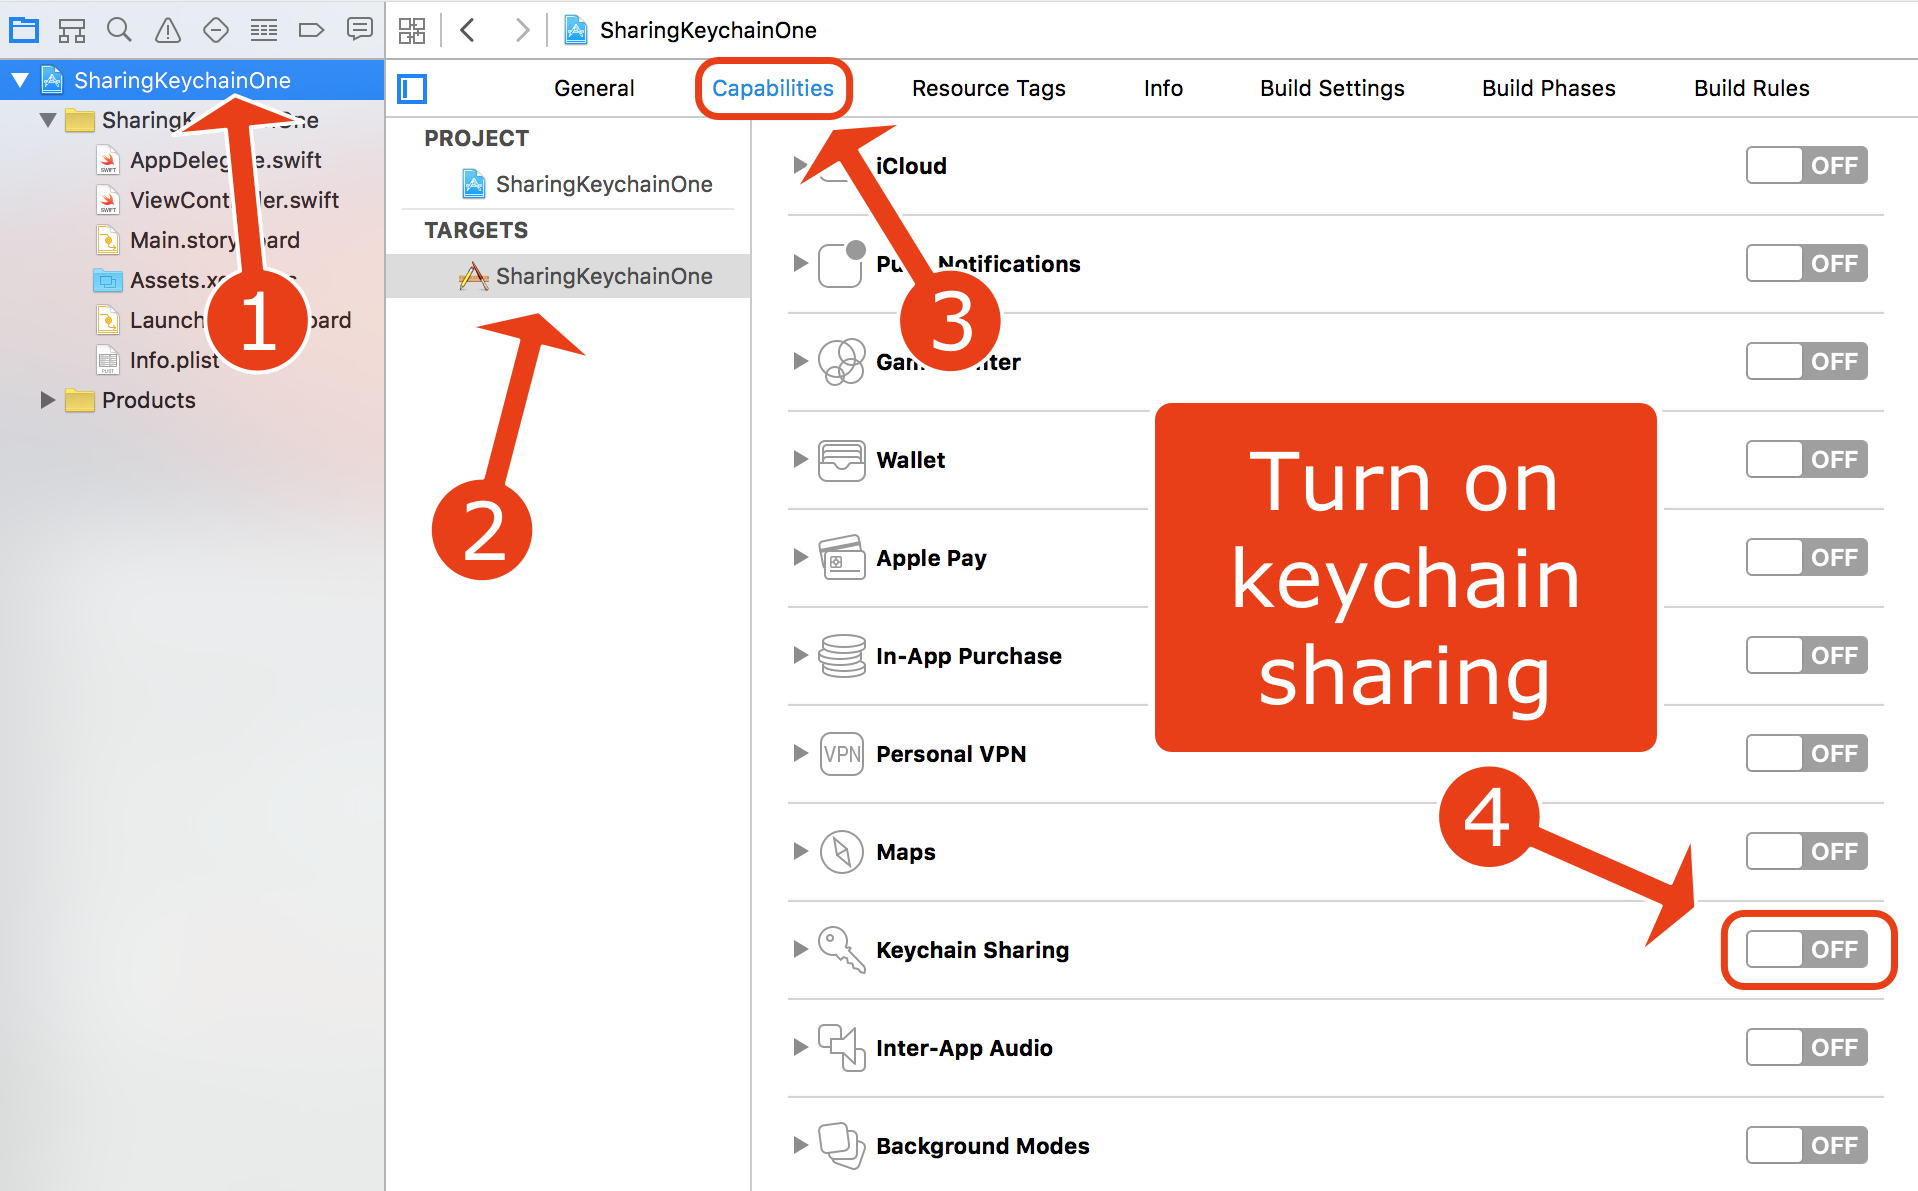 Turn on Keychain sharing in Xcode